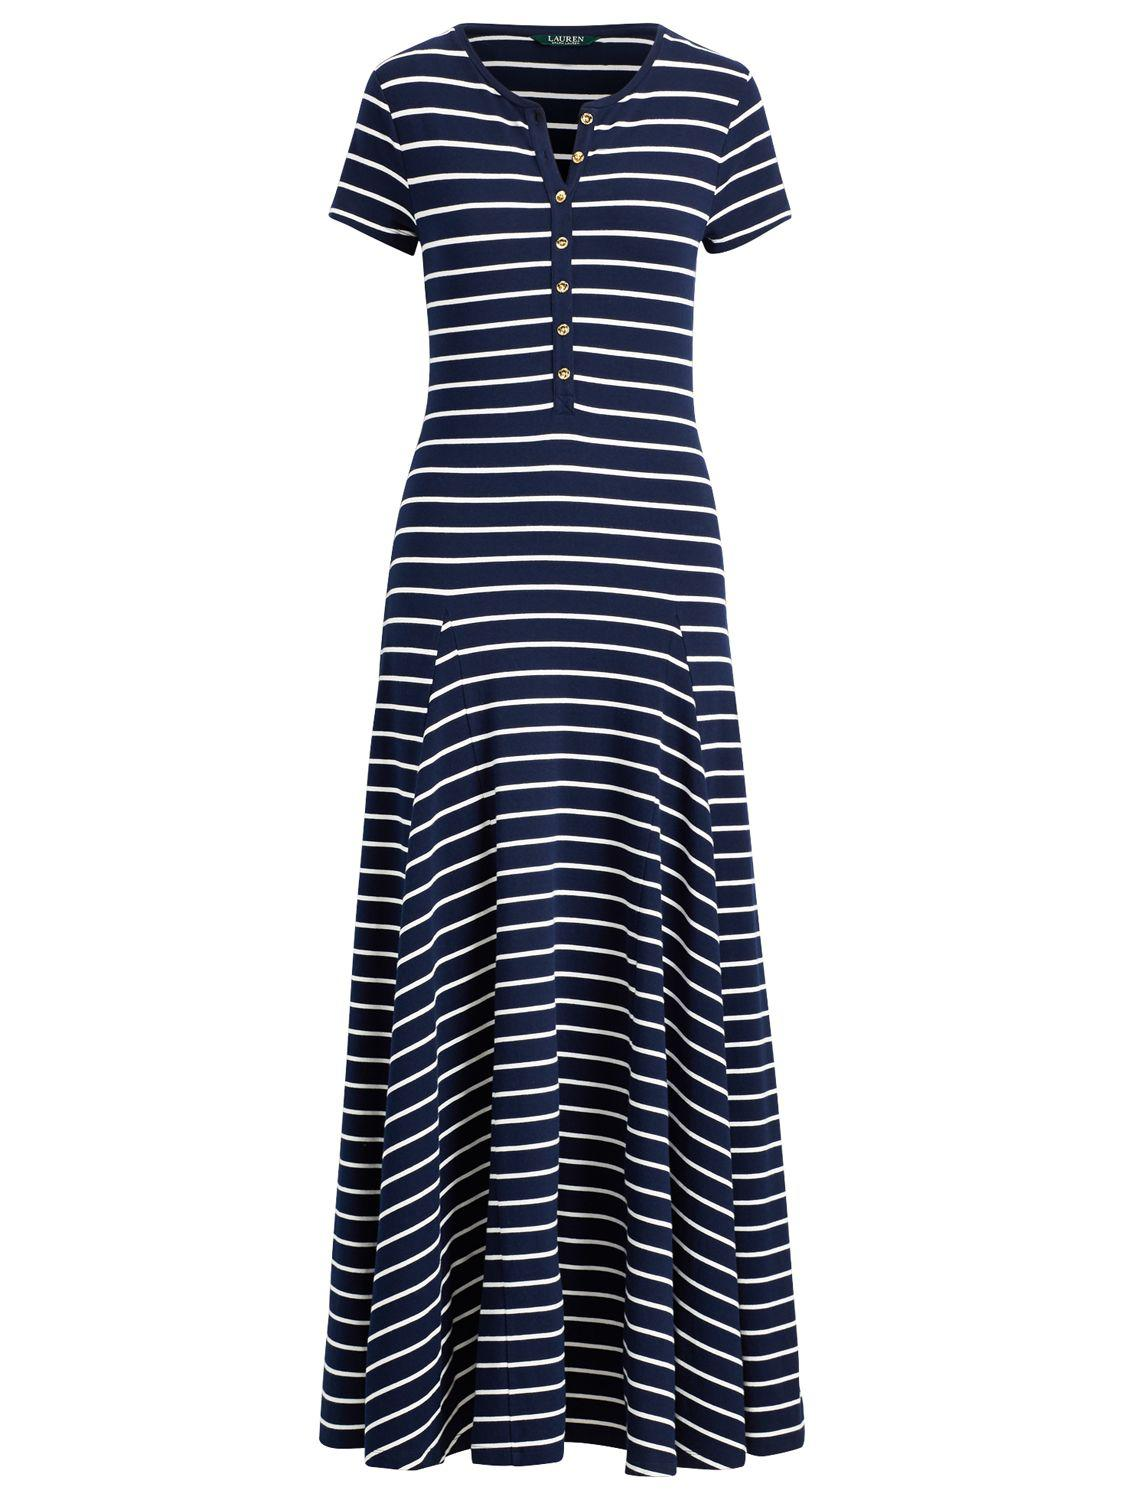 Ralph Lauren Blue Dress Casual Wolford In Striped Lyst nOk8P0wX